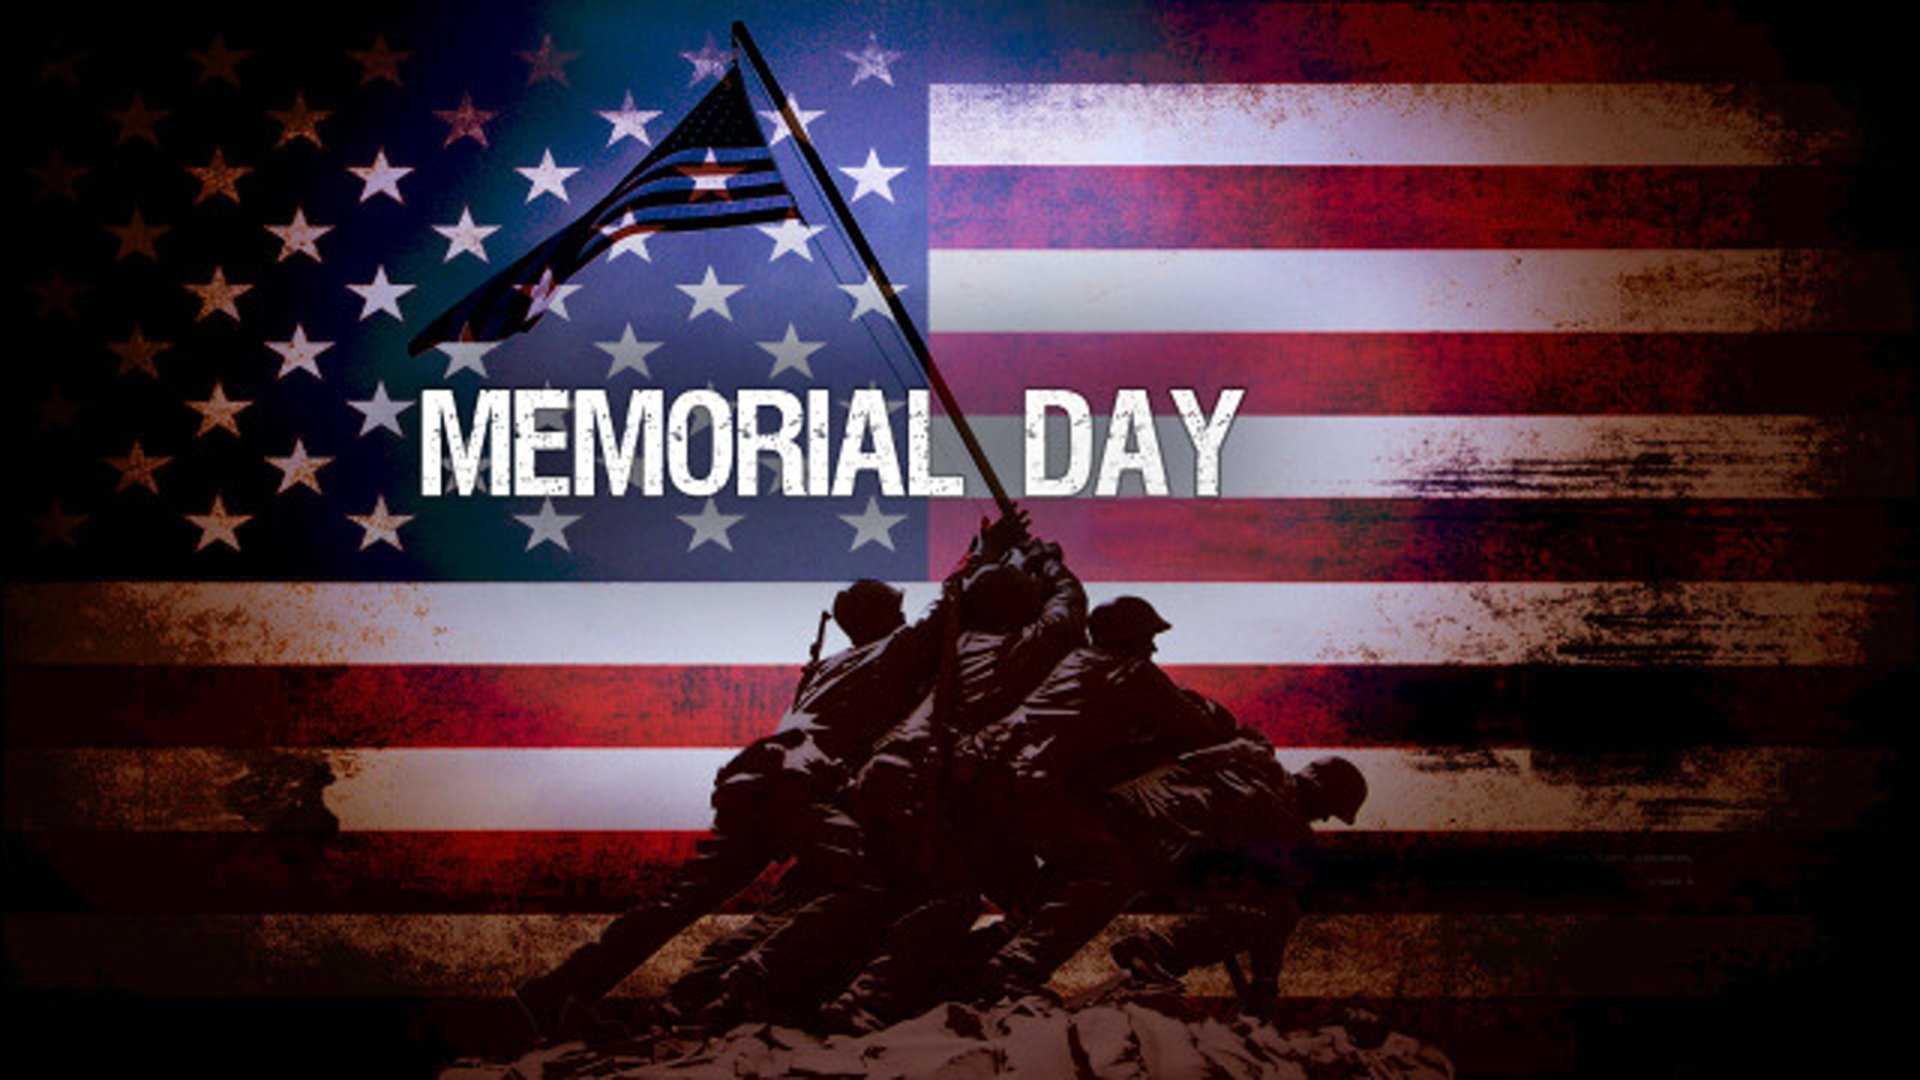 Memorial Day Laptop Background